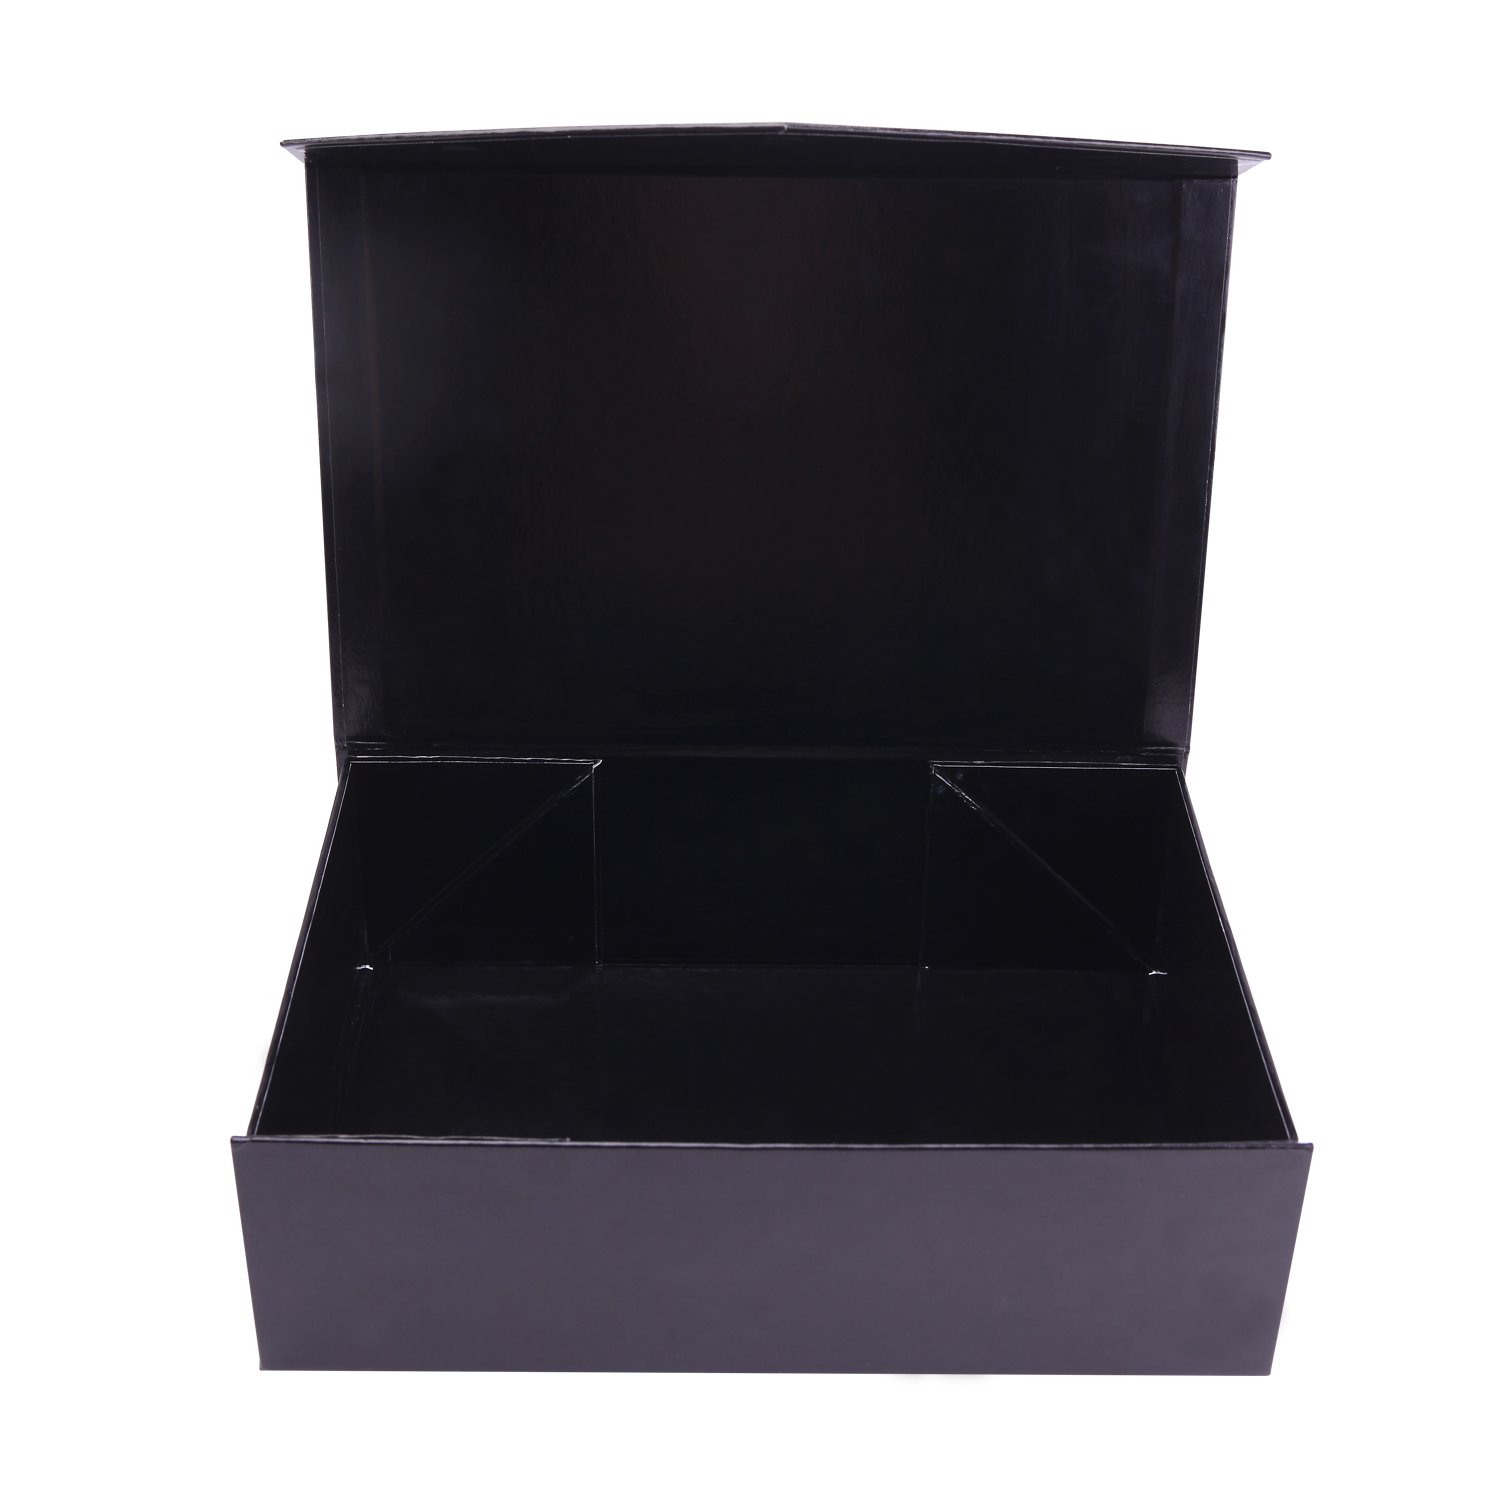 Large (13.9'' x 4.4'' x 9.2'') Gift Box Magnetic Closure Box Magnetic Closure Collapsible Gift Box Hamper Box Decorative Storage Box Decorative Boxes with Magnetic Closure (Black, Pack of 5 by PACKHOME by PACKHOME (Image #3)